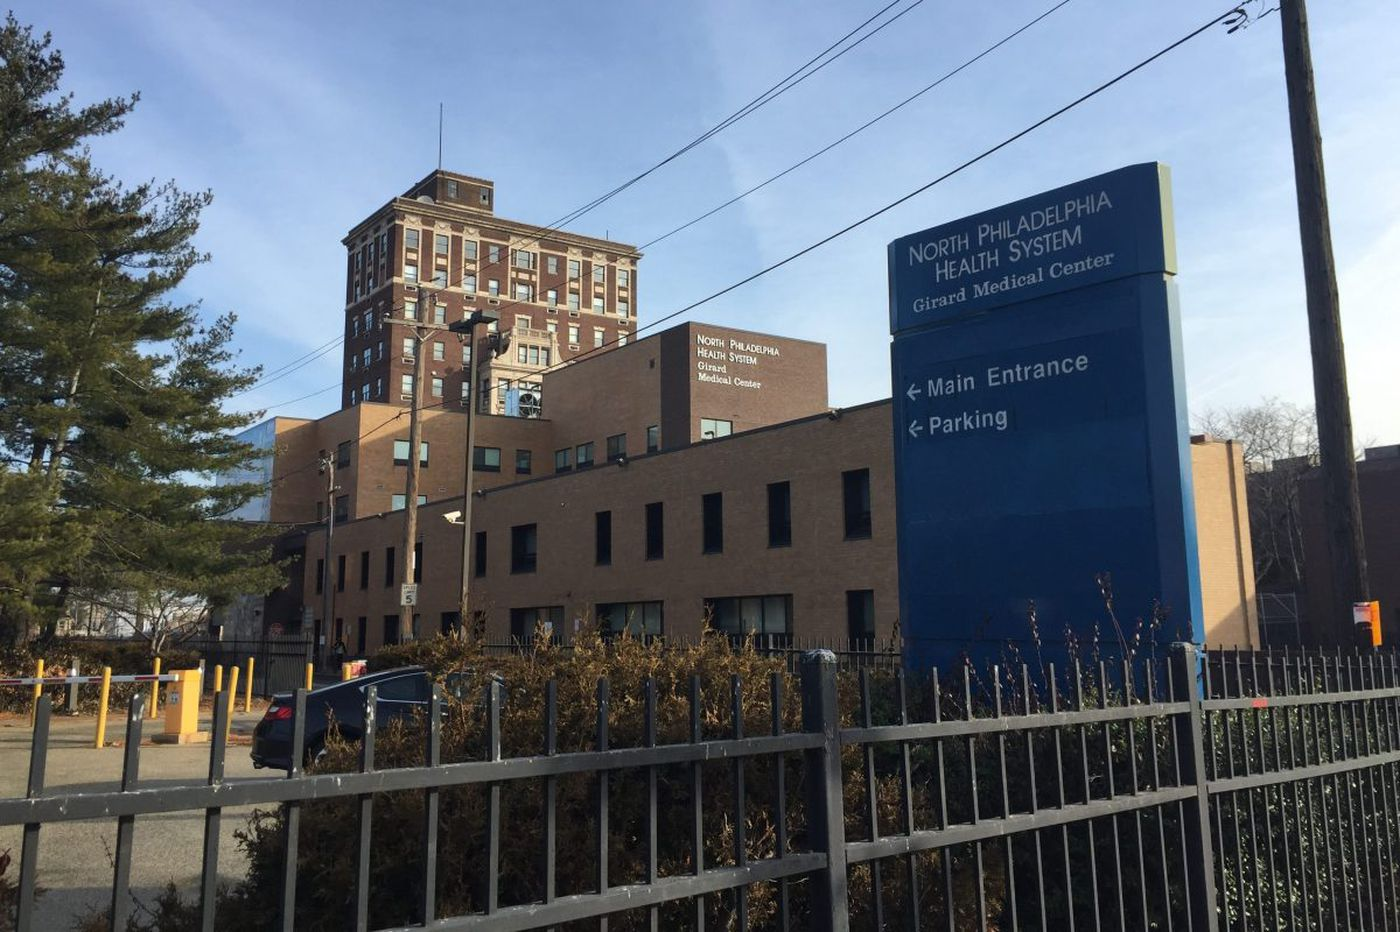 Bankruptcy judge tentatively approves Girard Medical Center sale